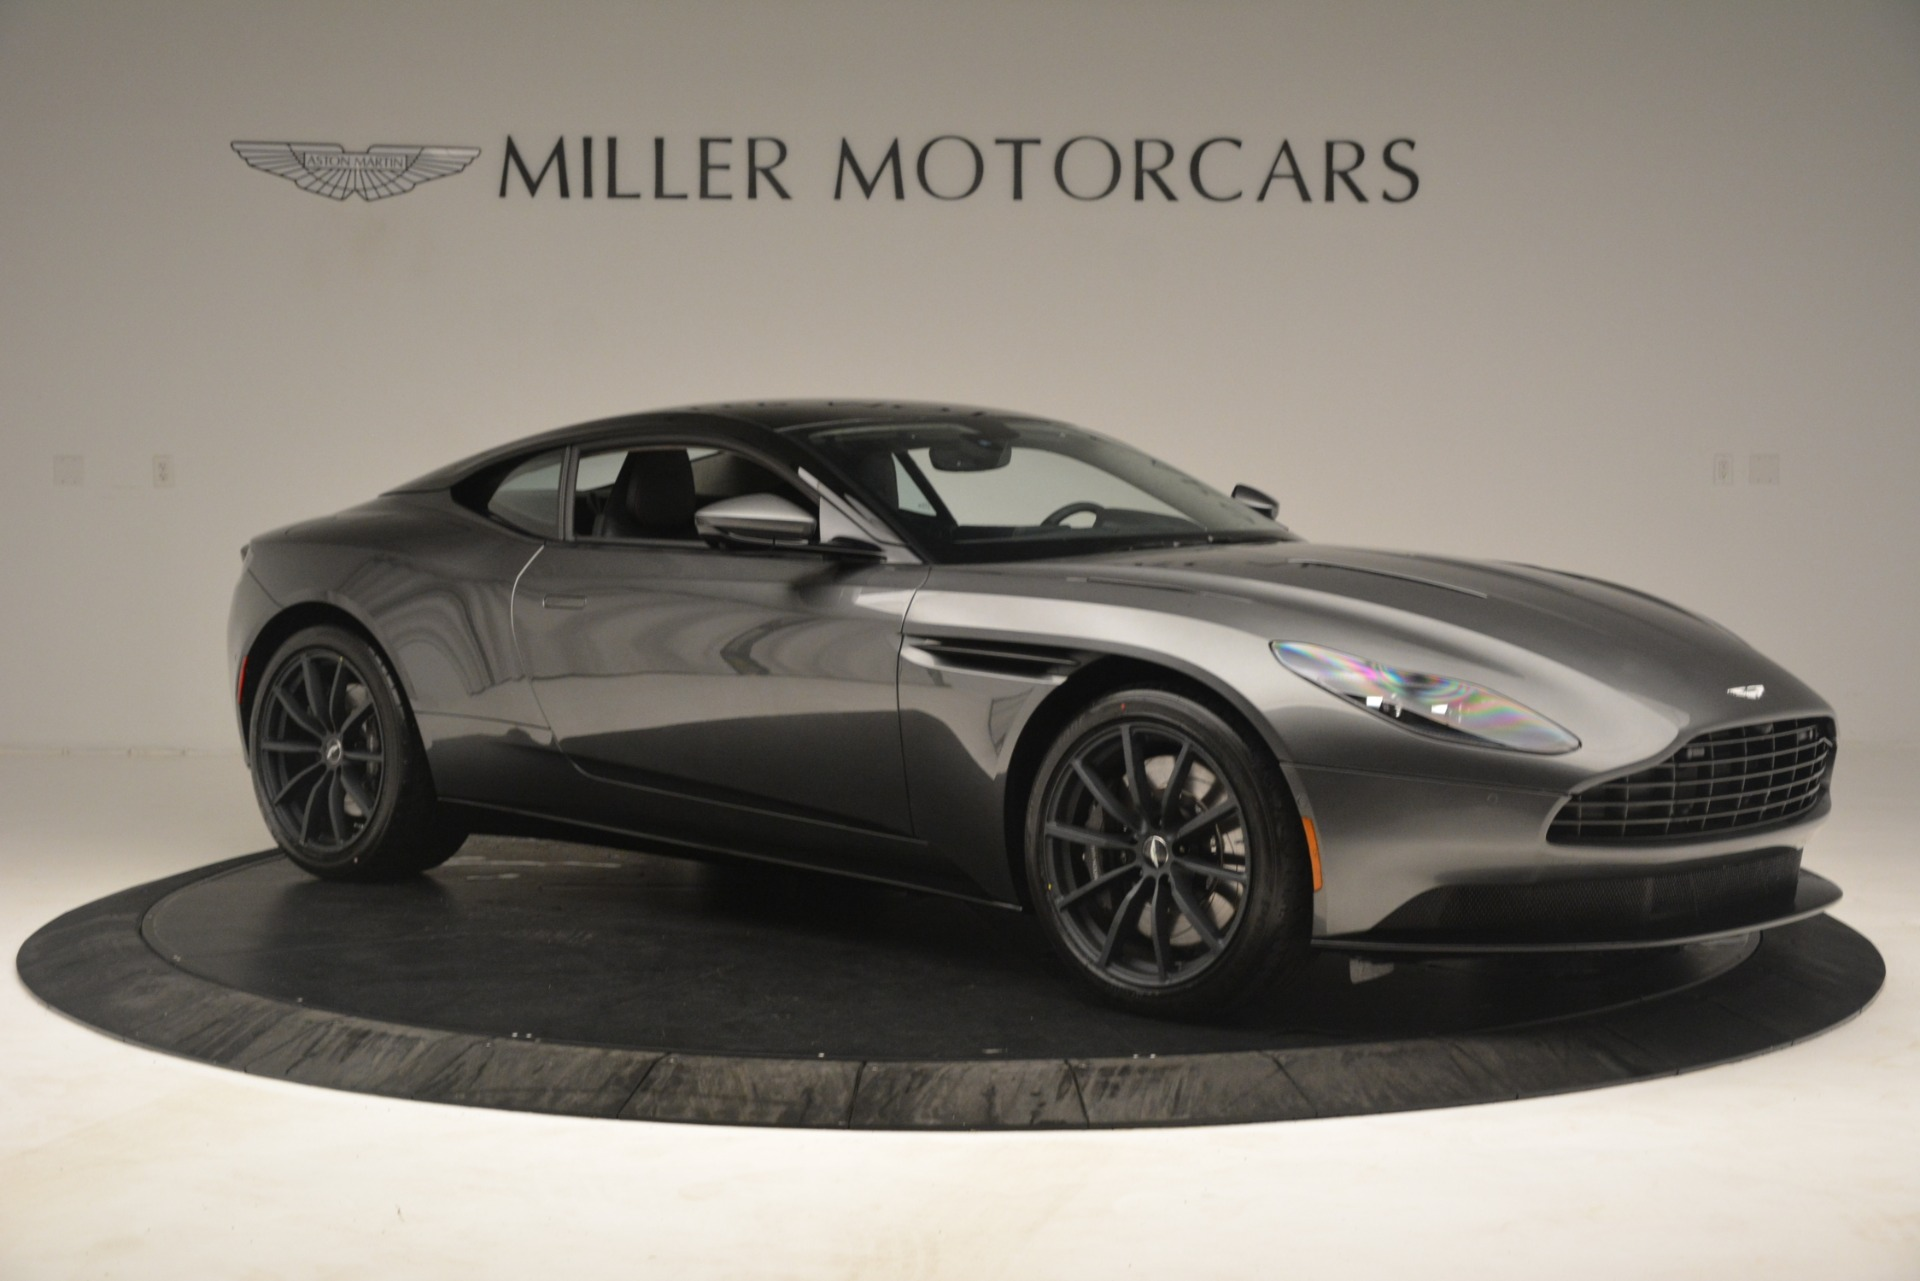 New 2019 Aston Martin DB11 V12 AMR Coupe For Sale In Greenwich, CT. Alfa Romeo of Greenwich, A1366 3123_p10